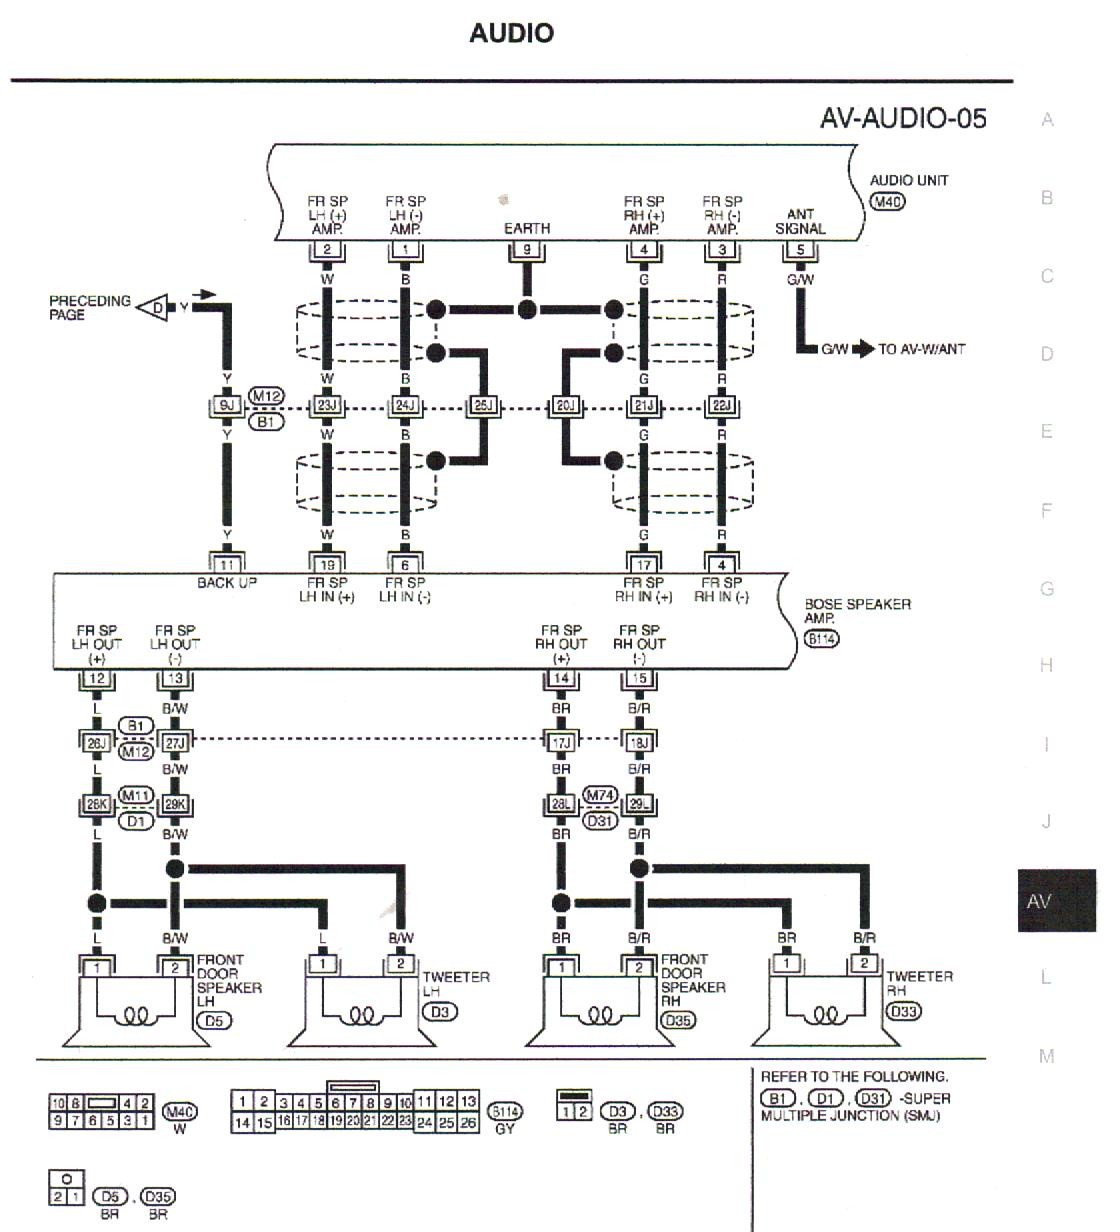 Honda Accord Engine Diagram Awesome Repair Guides Firing Orders moreover Ford Fuse Diagram Wire Data Schema E Enthusiast Wiring Diagrams Schematics F Electrical Fuses Panel Schematic Explained V Box For Van Auto Excurtion moreover Ford E Wiring Diagram Schematics Diagrams F Fuse Box Schematic Wire Data Schema Van Location House Symbols Enthusiast Smart Mercedes Benz 2006 S 350 also Ford F Engine Diagram Search For Wiring Diagrams 1985 150 moreover And Rockford Fosgate Wiring Diagram 460sd. on ford e wiring diagram enthusiast diagrams f fuse electrical